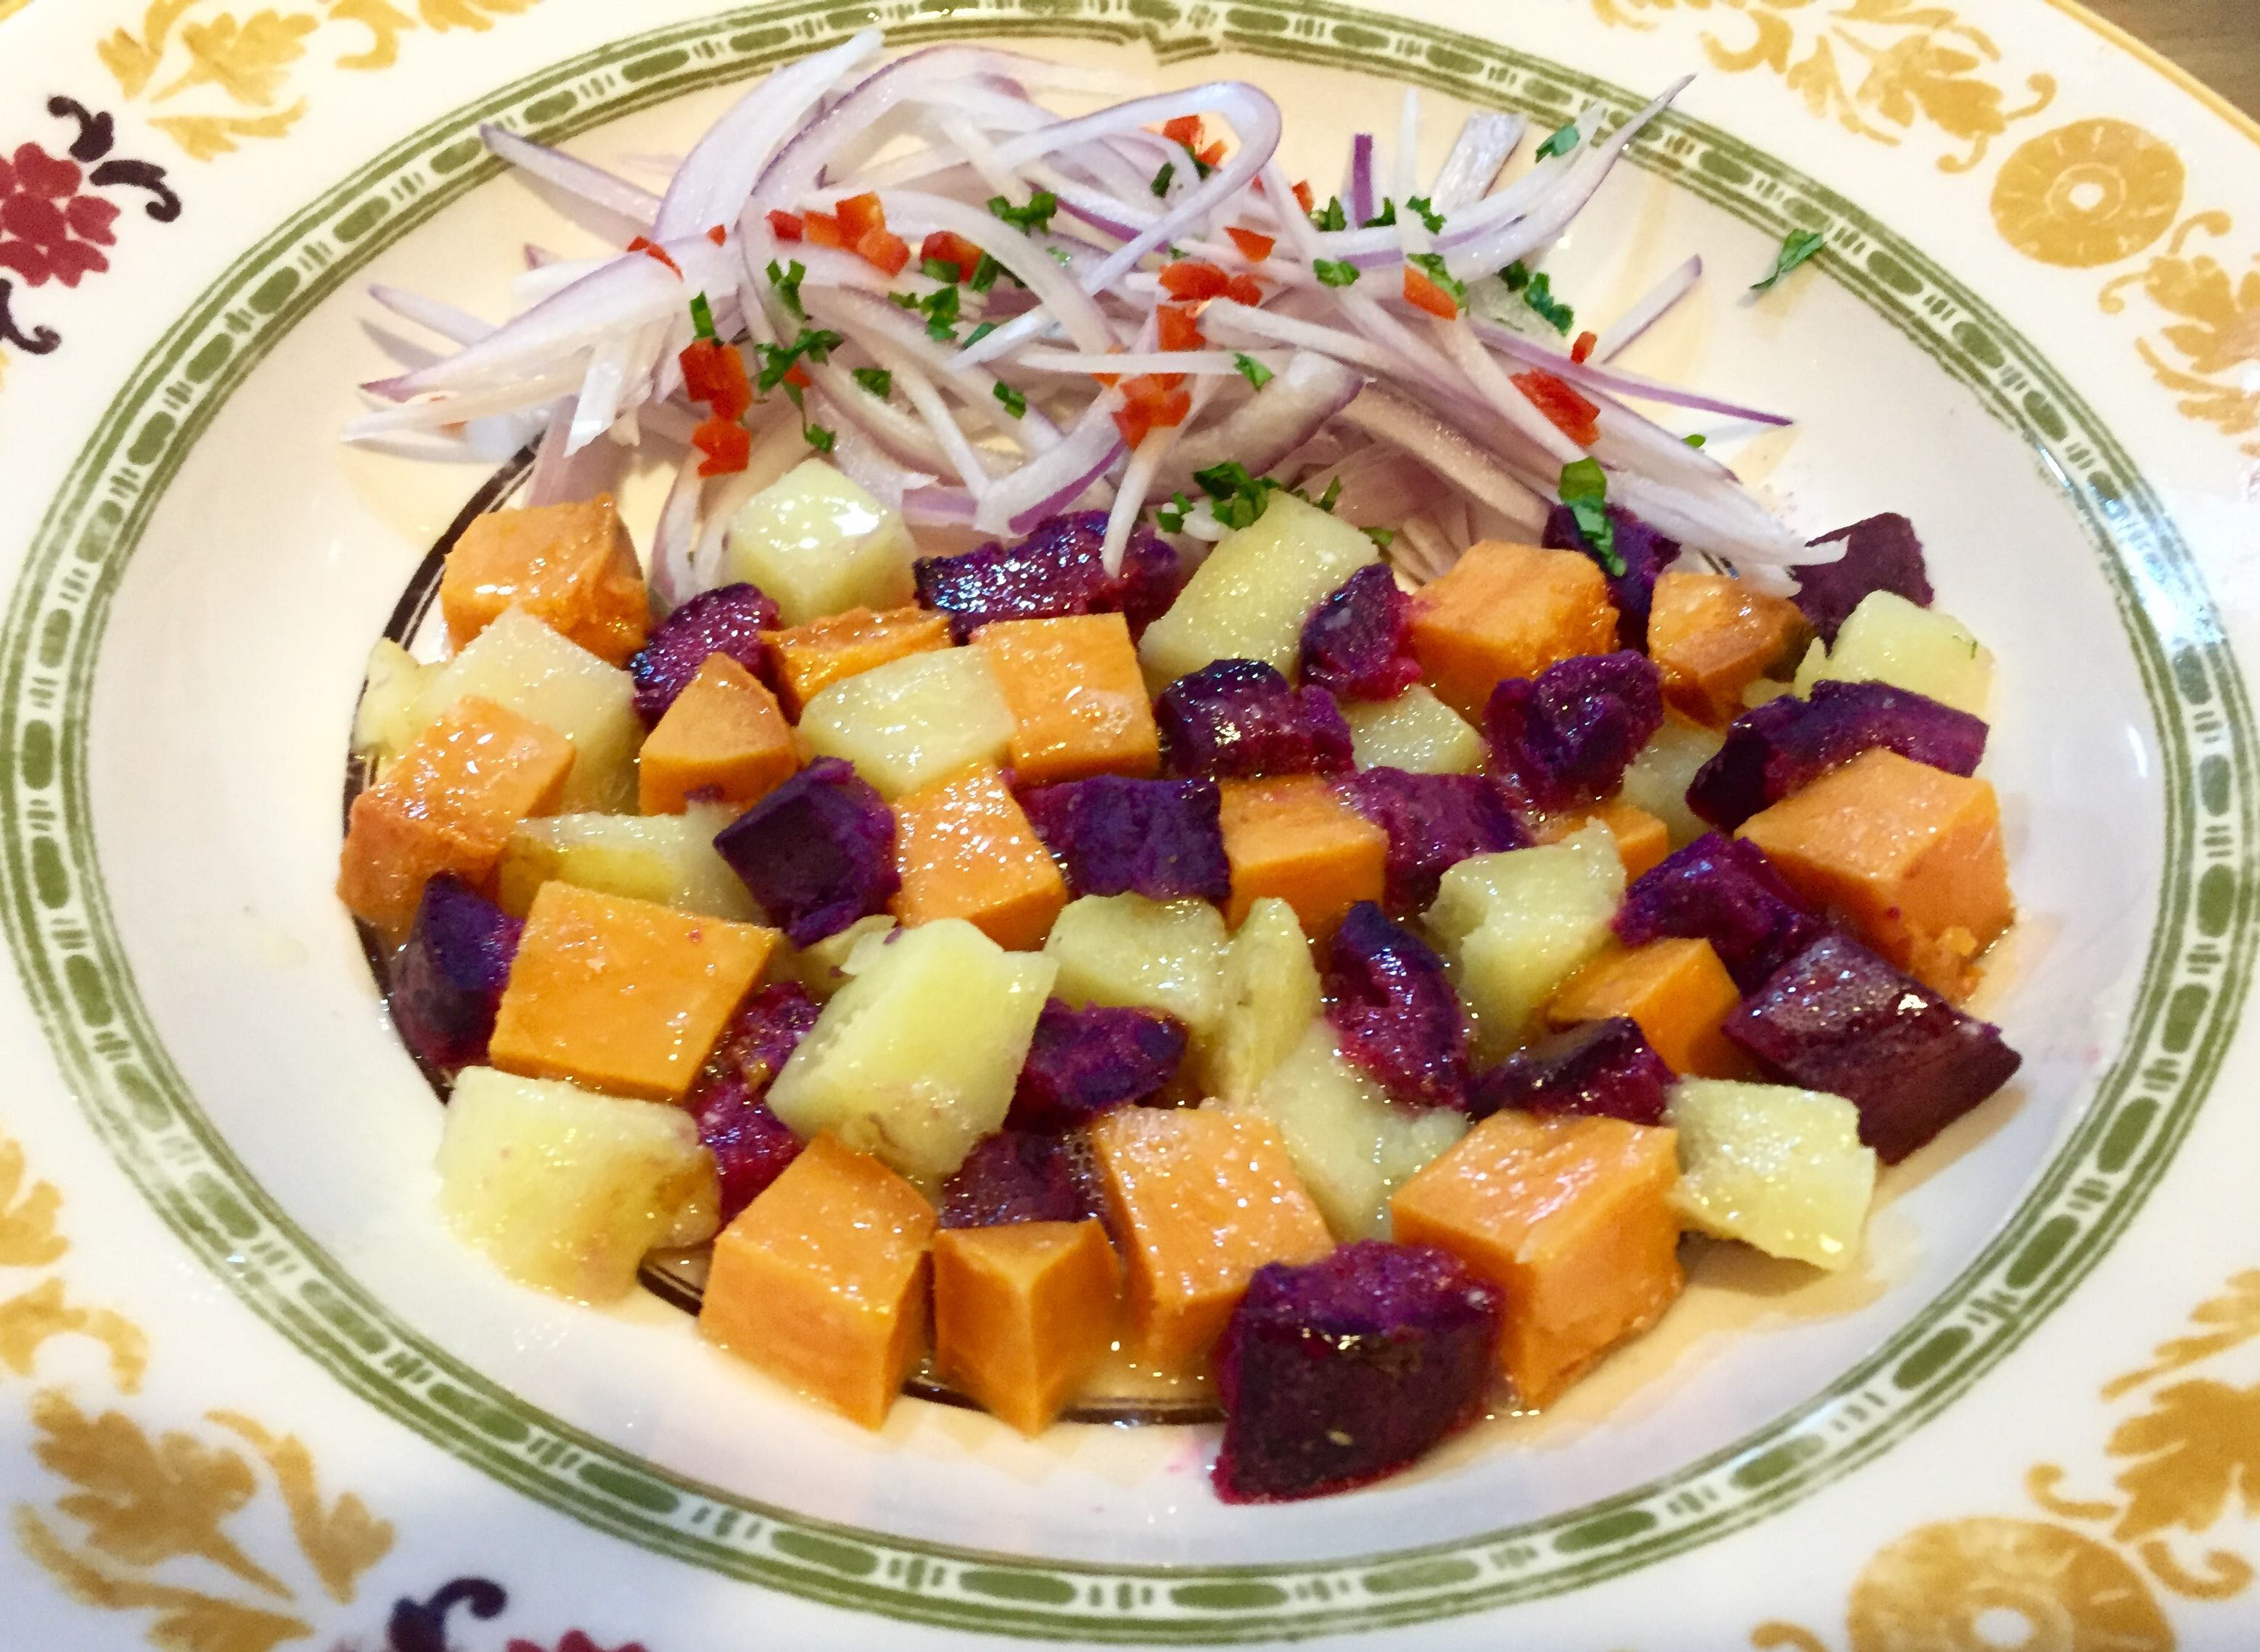 Cebiche-Style Sweet Potatoes with Zarza